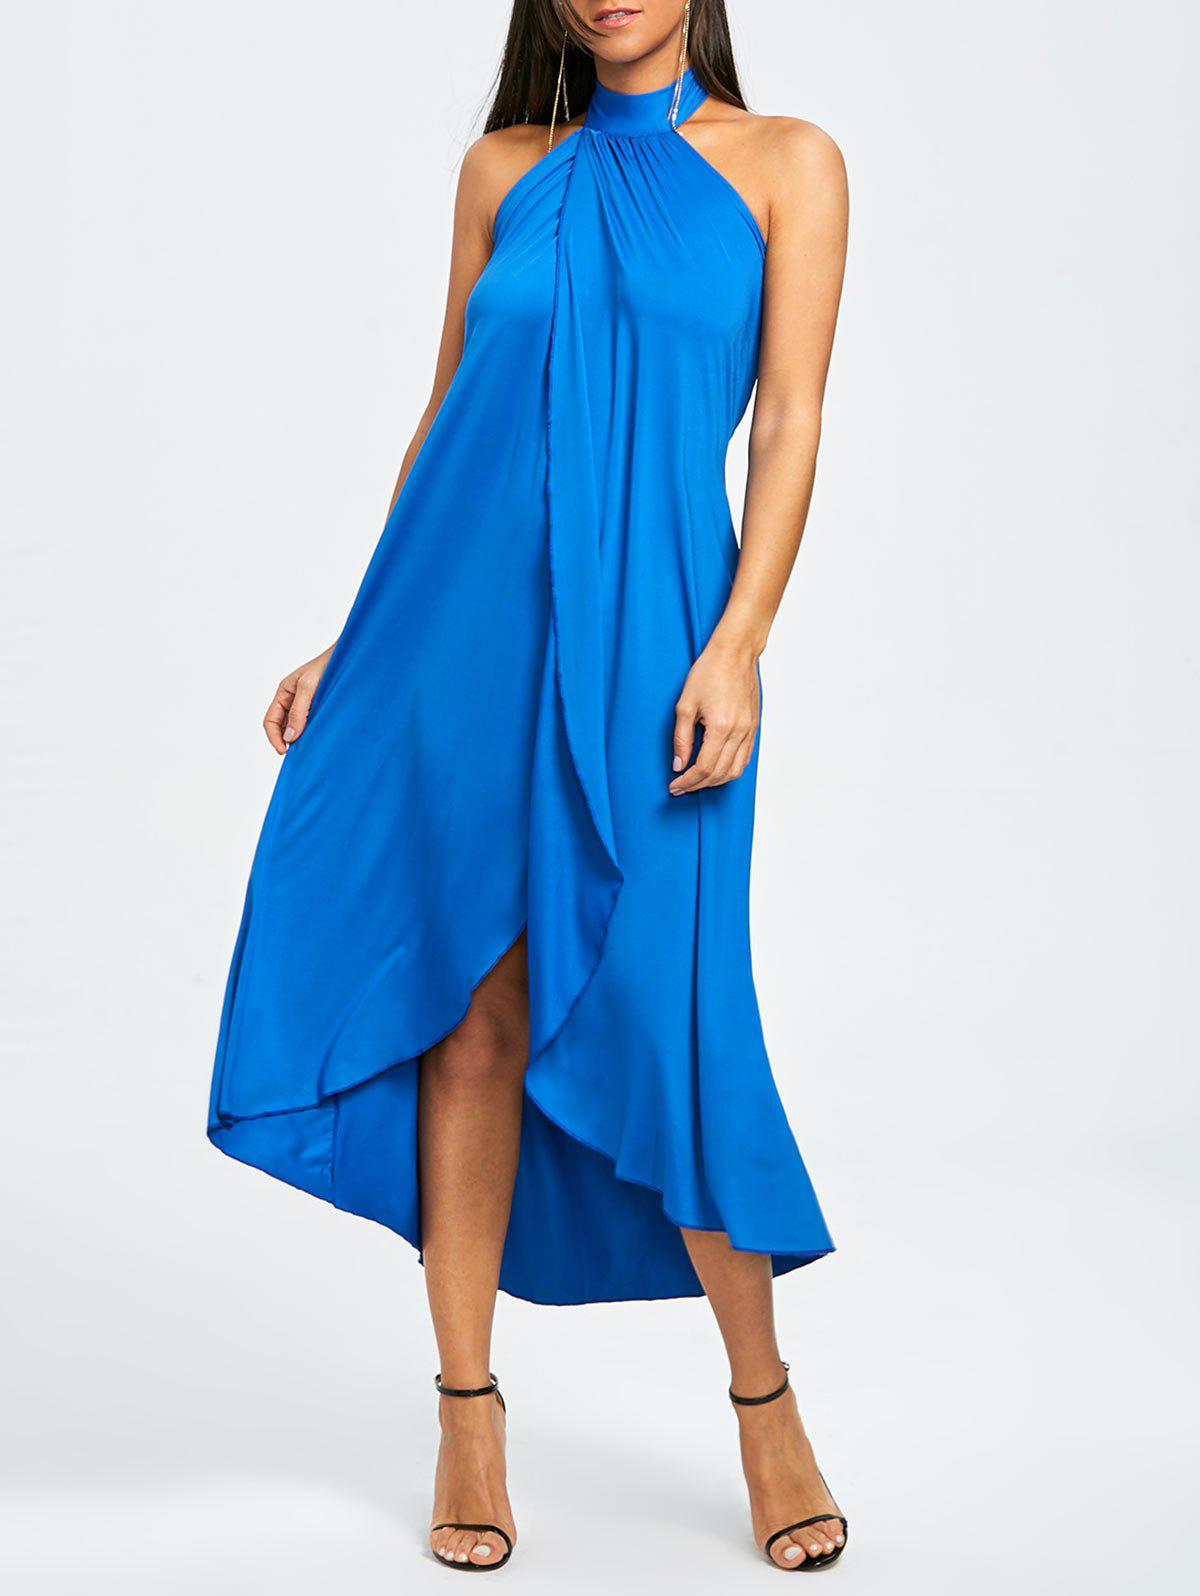 Fashion Backless Halter Slit Beach Cover-up Dress